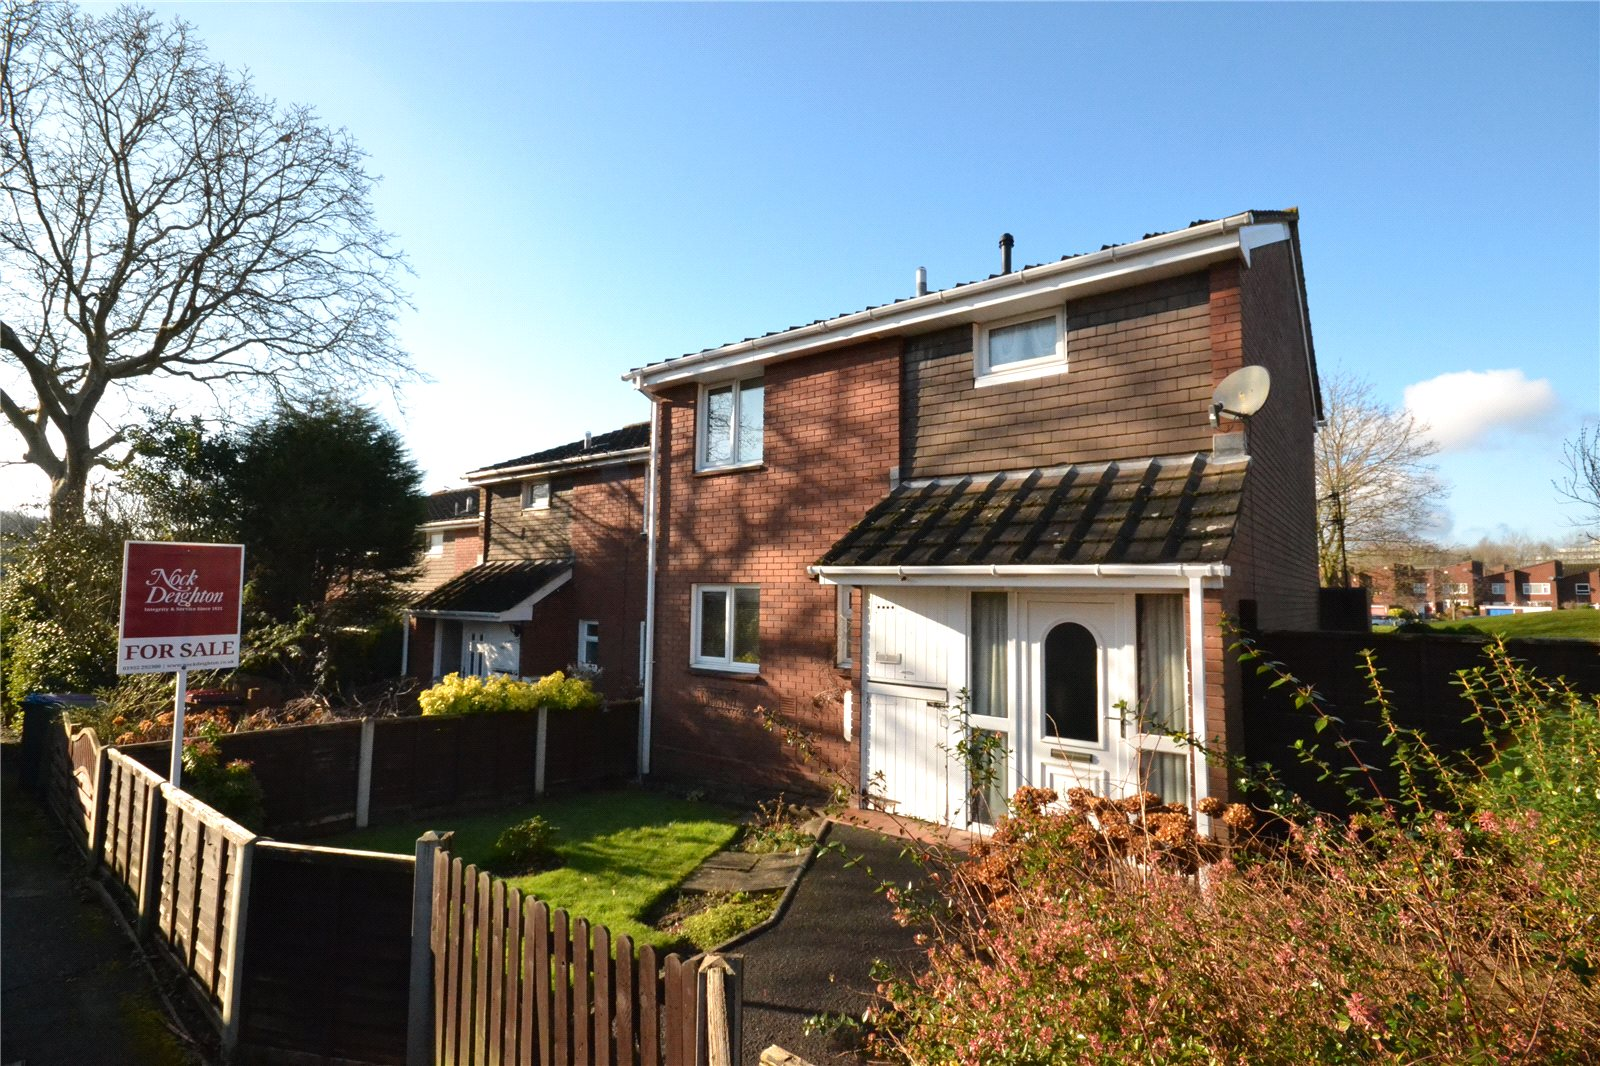 3 Bedrooms End Of Terrace House for sale in 43 Deepdale, Hollinswood, Telford, Shropshire, TF3